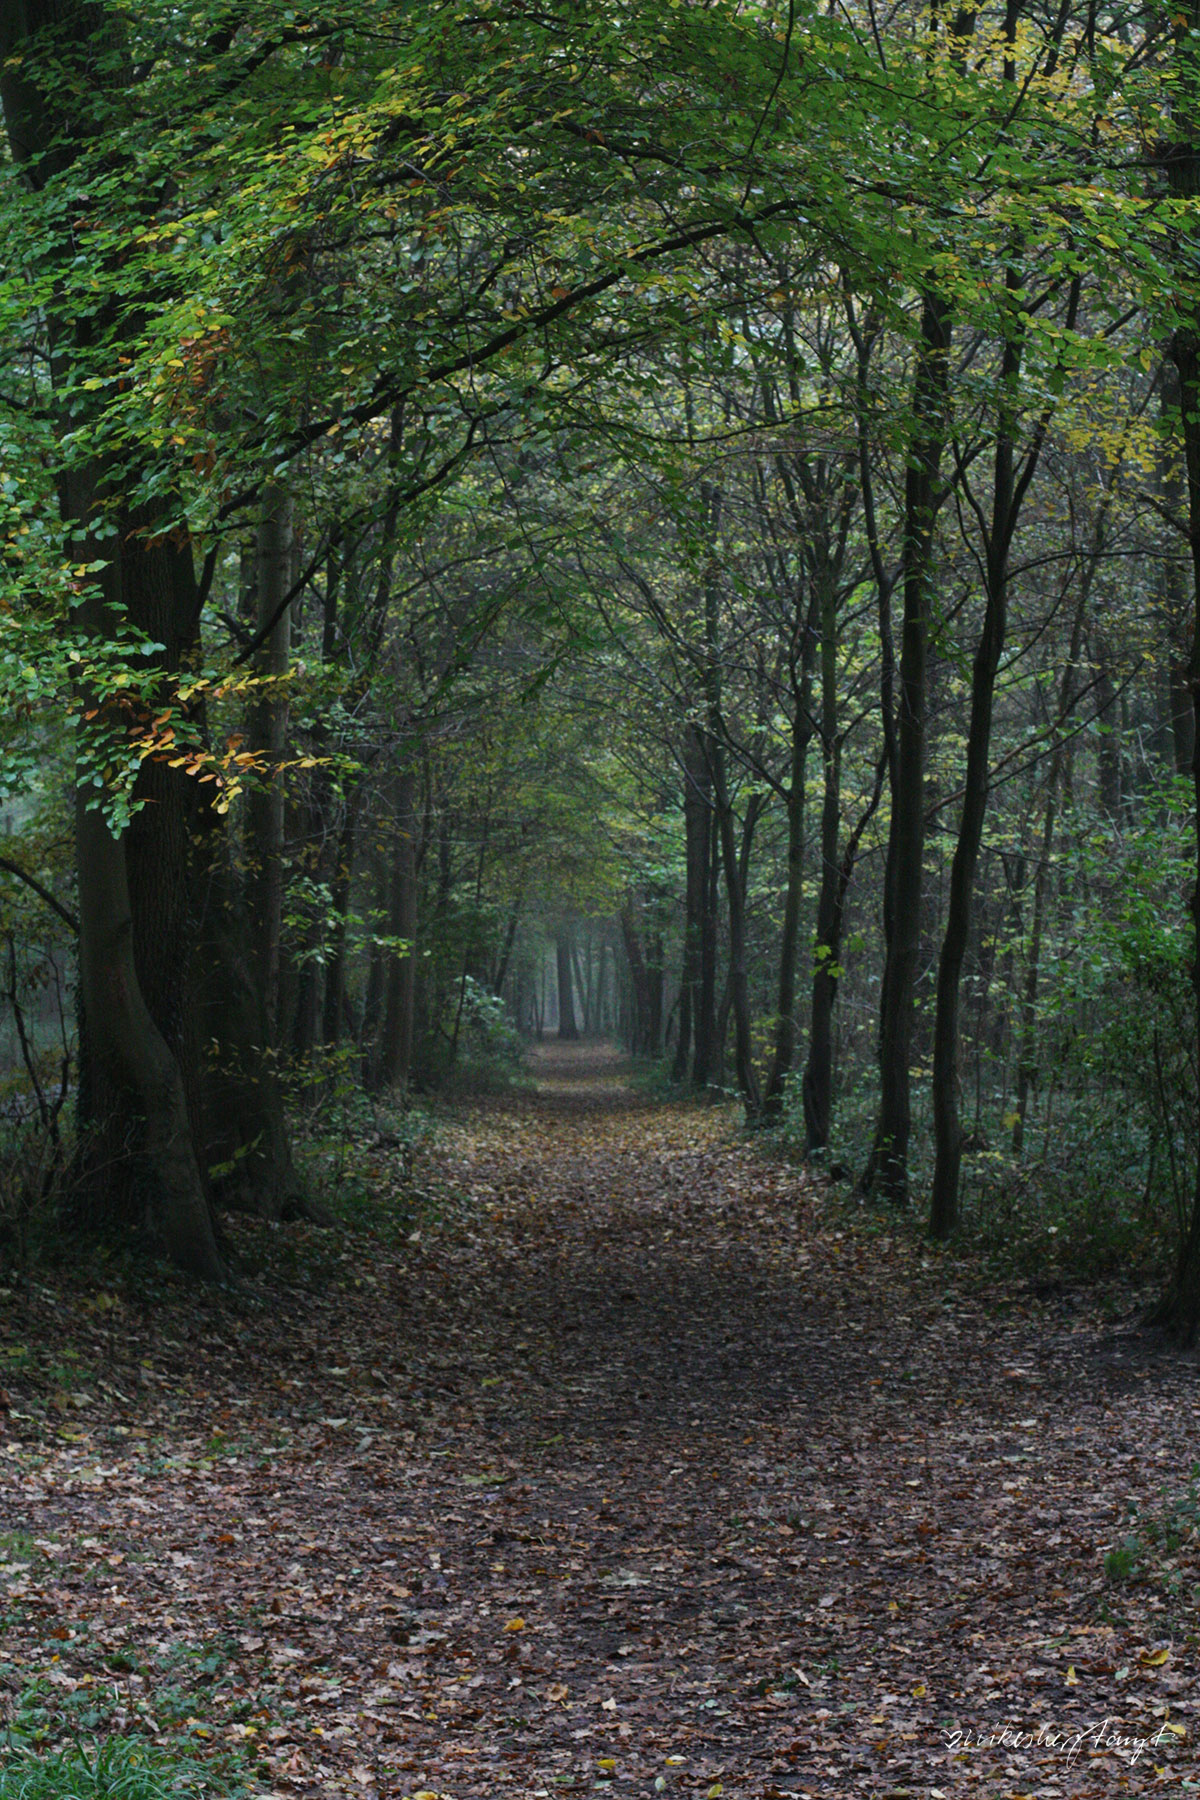 forstwald, krefeld, #nikeskrefeld, into the trees, the forest, wald, herbst, laub, nikesherztanzt